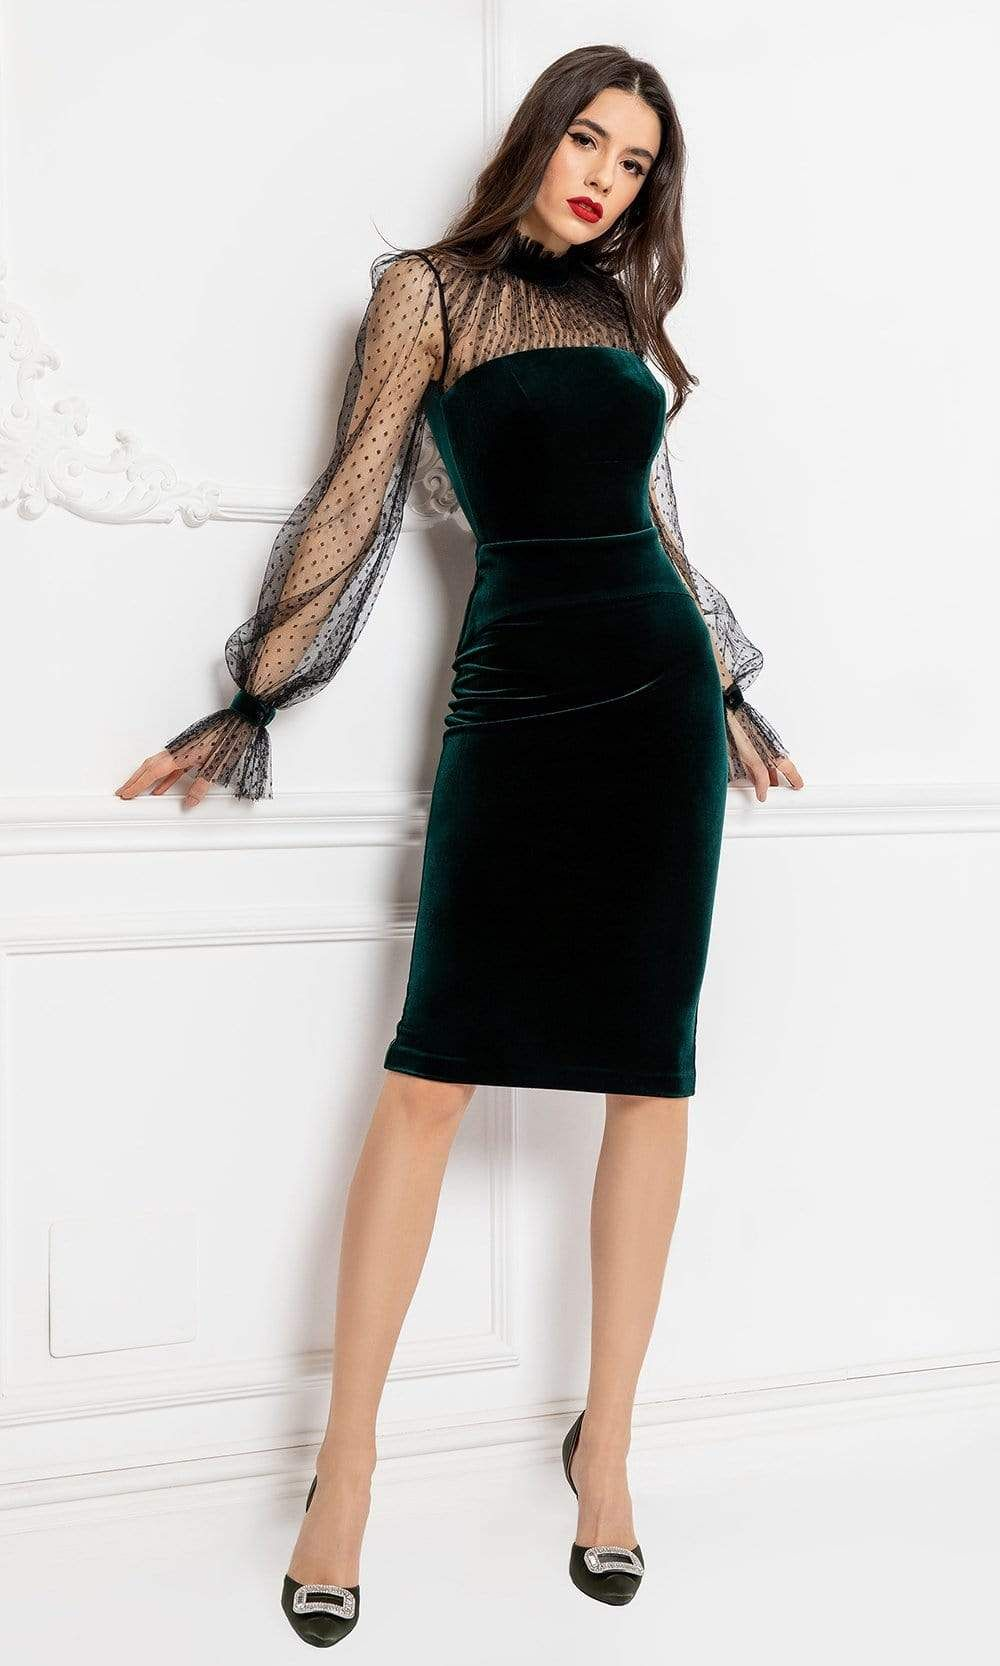 Be every bit as sophisticated as the timeless beauties of Hollywood in this classy cocktail dress from Cristallini SKA1082. A form-fitting knee-length dress in classy stretch velvet showcasing a tube style bodice and an enclosed back, with elegant point d esprit tulle yoke and long sleeves with untrimmed gathered high neckline and cuffs. The sheath skirt sculpts from the hips down to a knee length hemline with a short slit at the back. Display an impeccable style at your spectacular black-tie ev